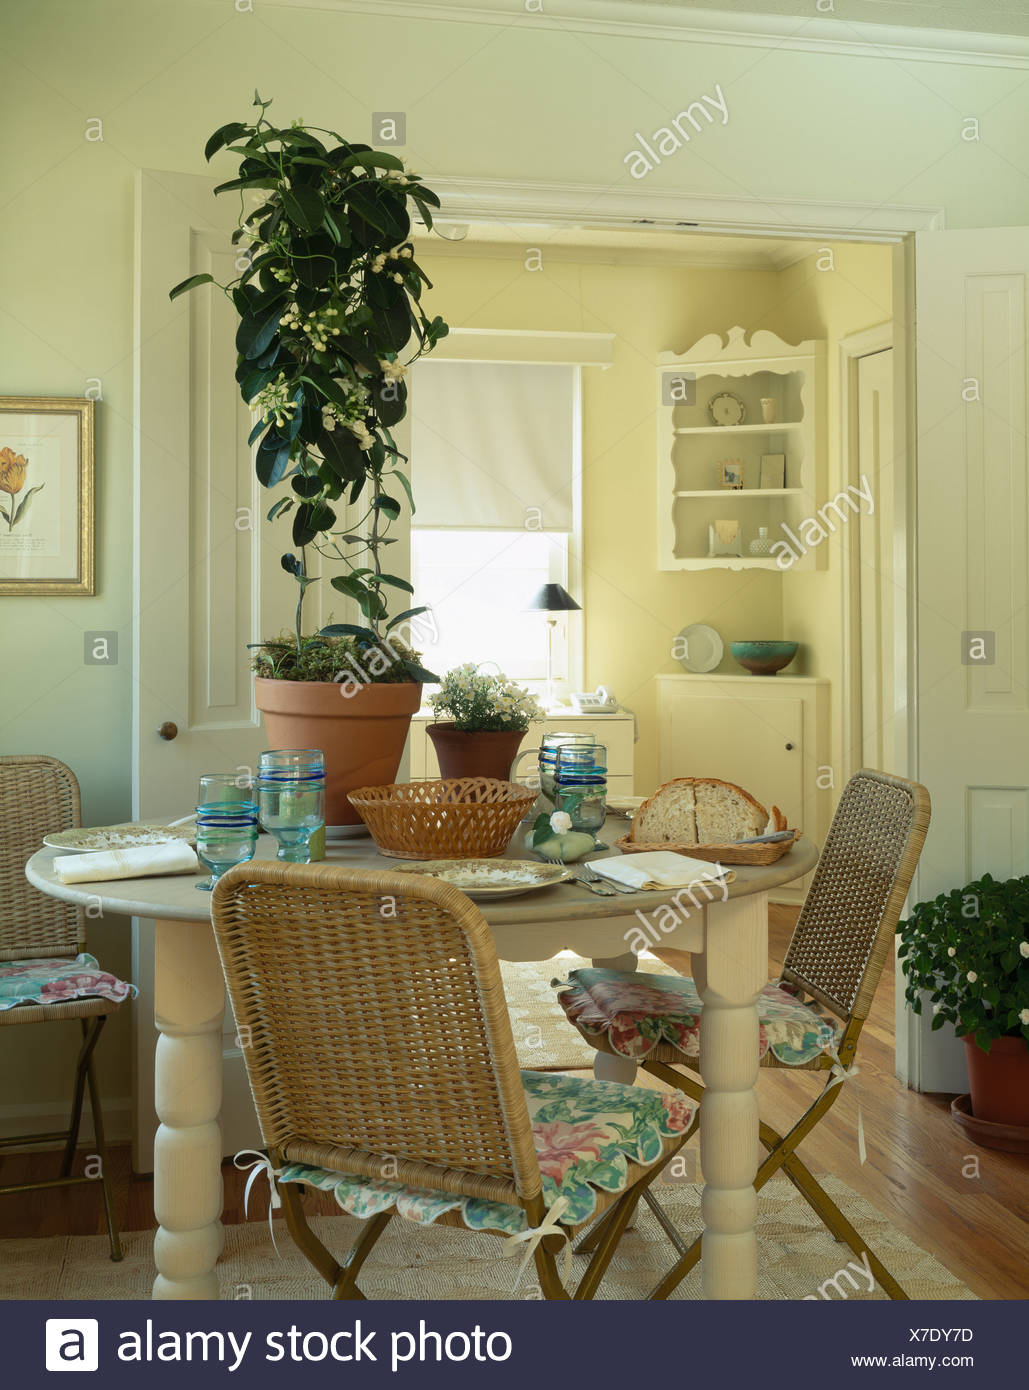 Tall Green Houseplant On Circular Cream Table In Dining Room With Floral Cushions Wicker